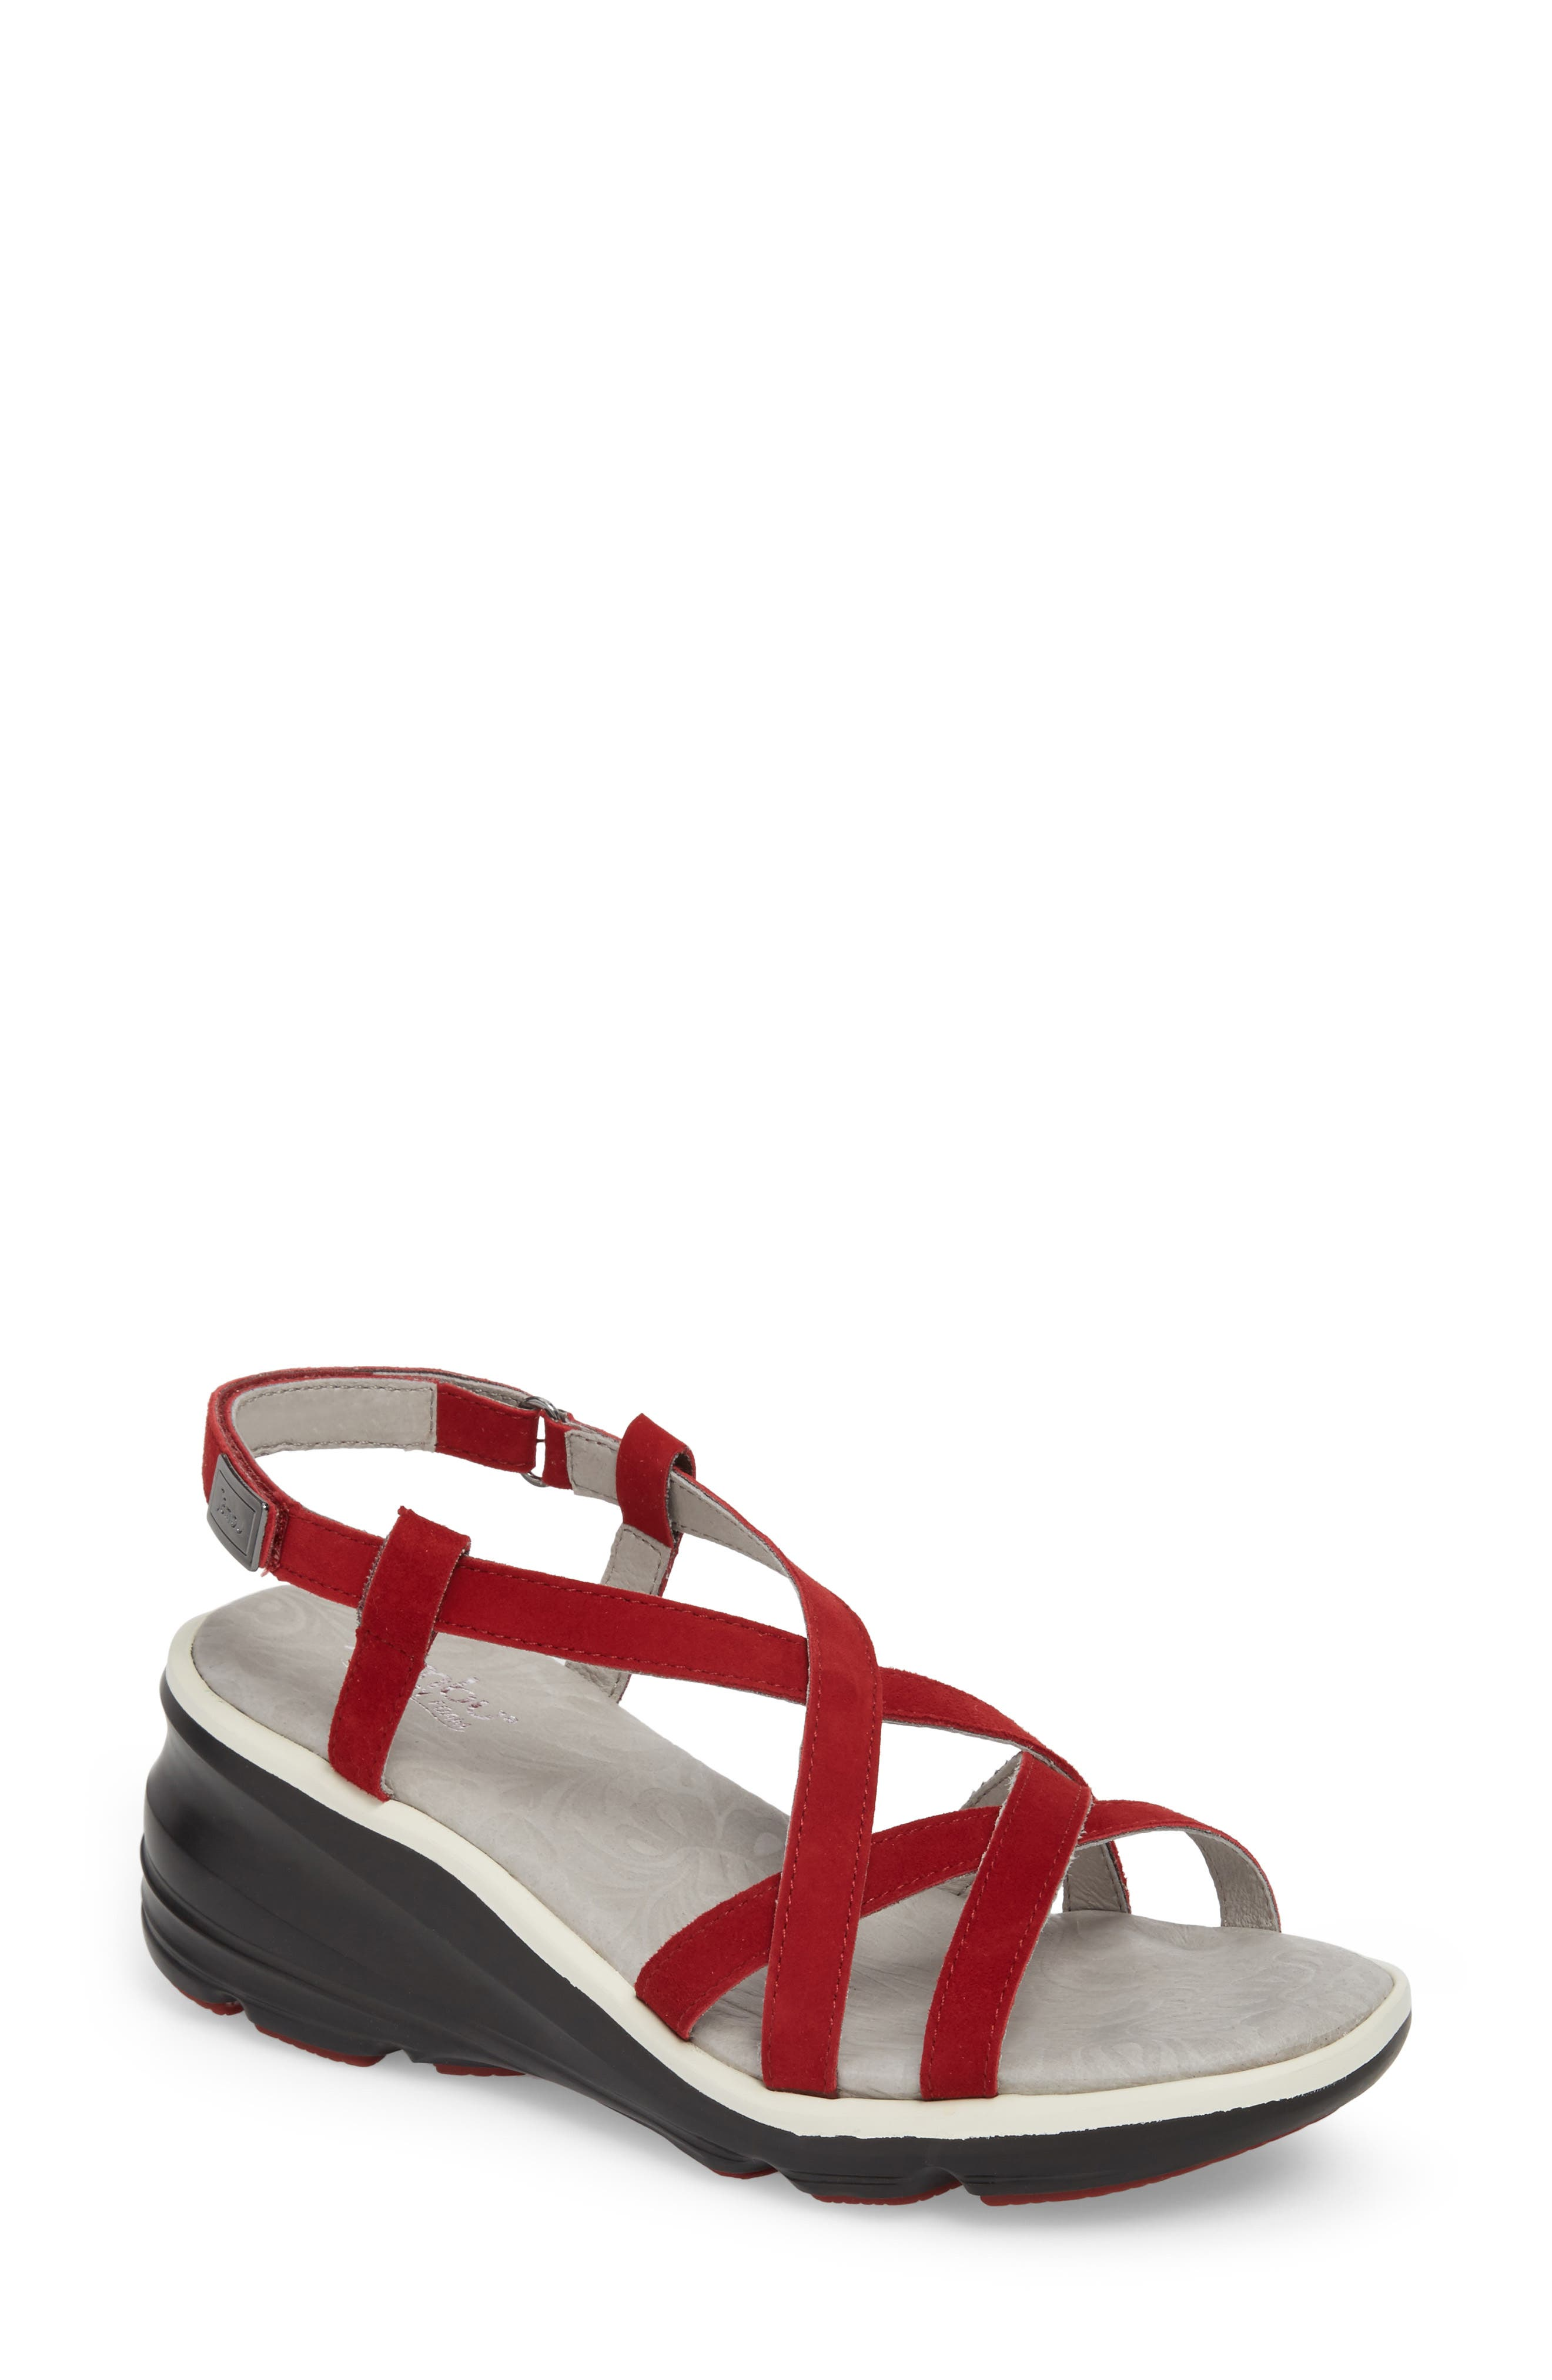 Ginger Wedge Sandal,                         Main,                         color, Red Suede